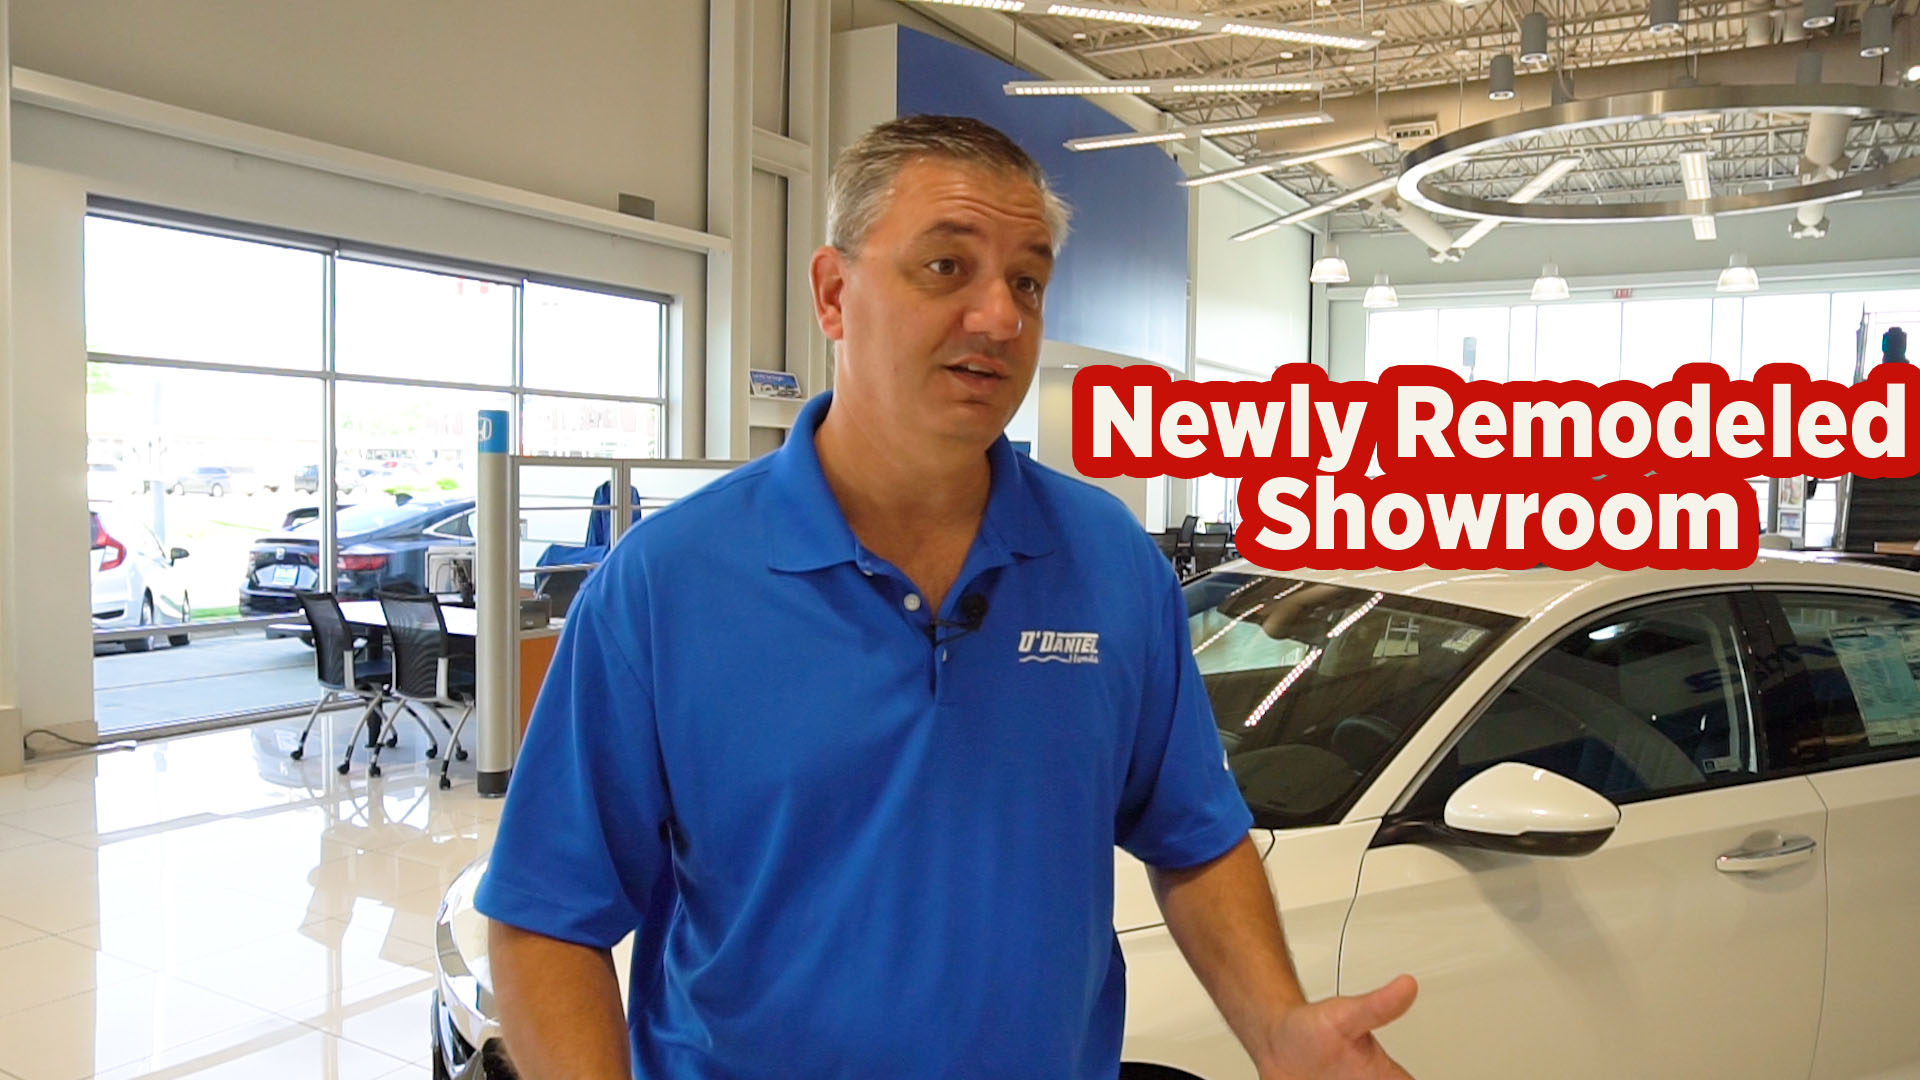 VIDEO: O'Daniel Honda Showroom Remodel